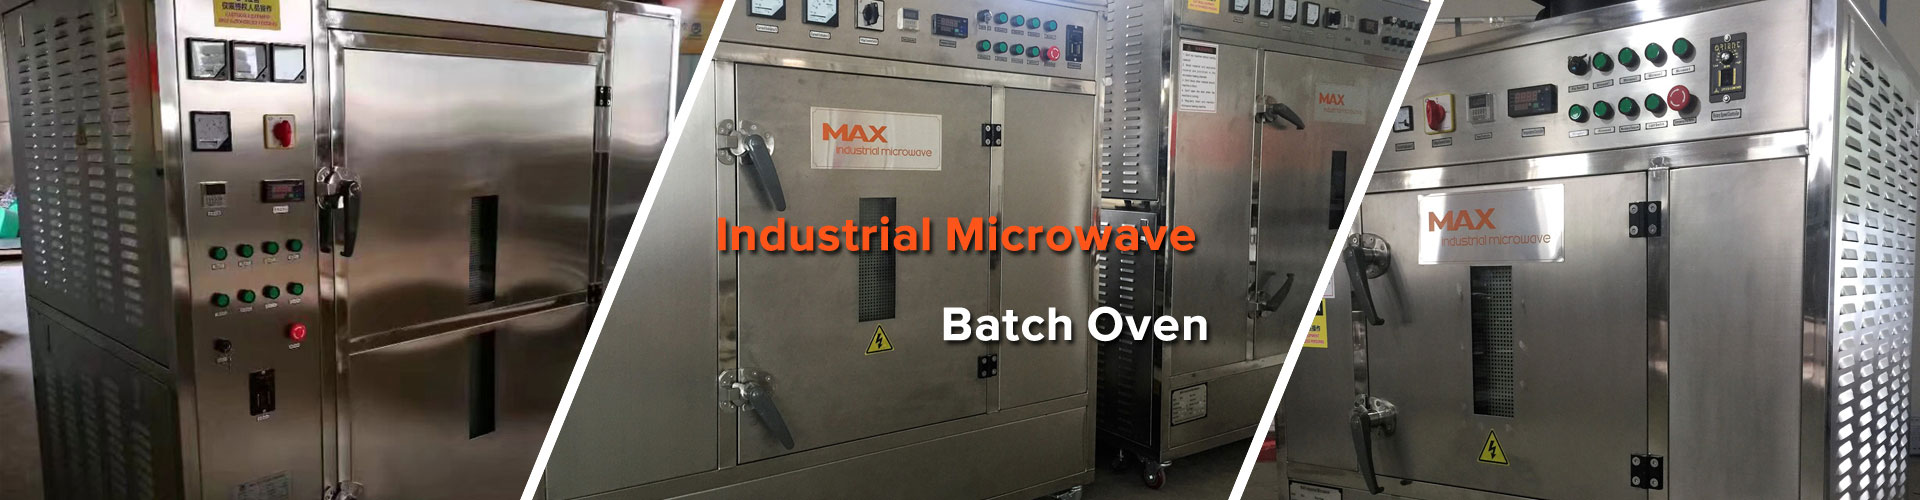 Max Industrial Microwave